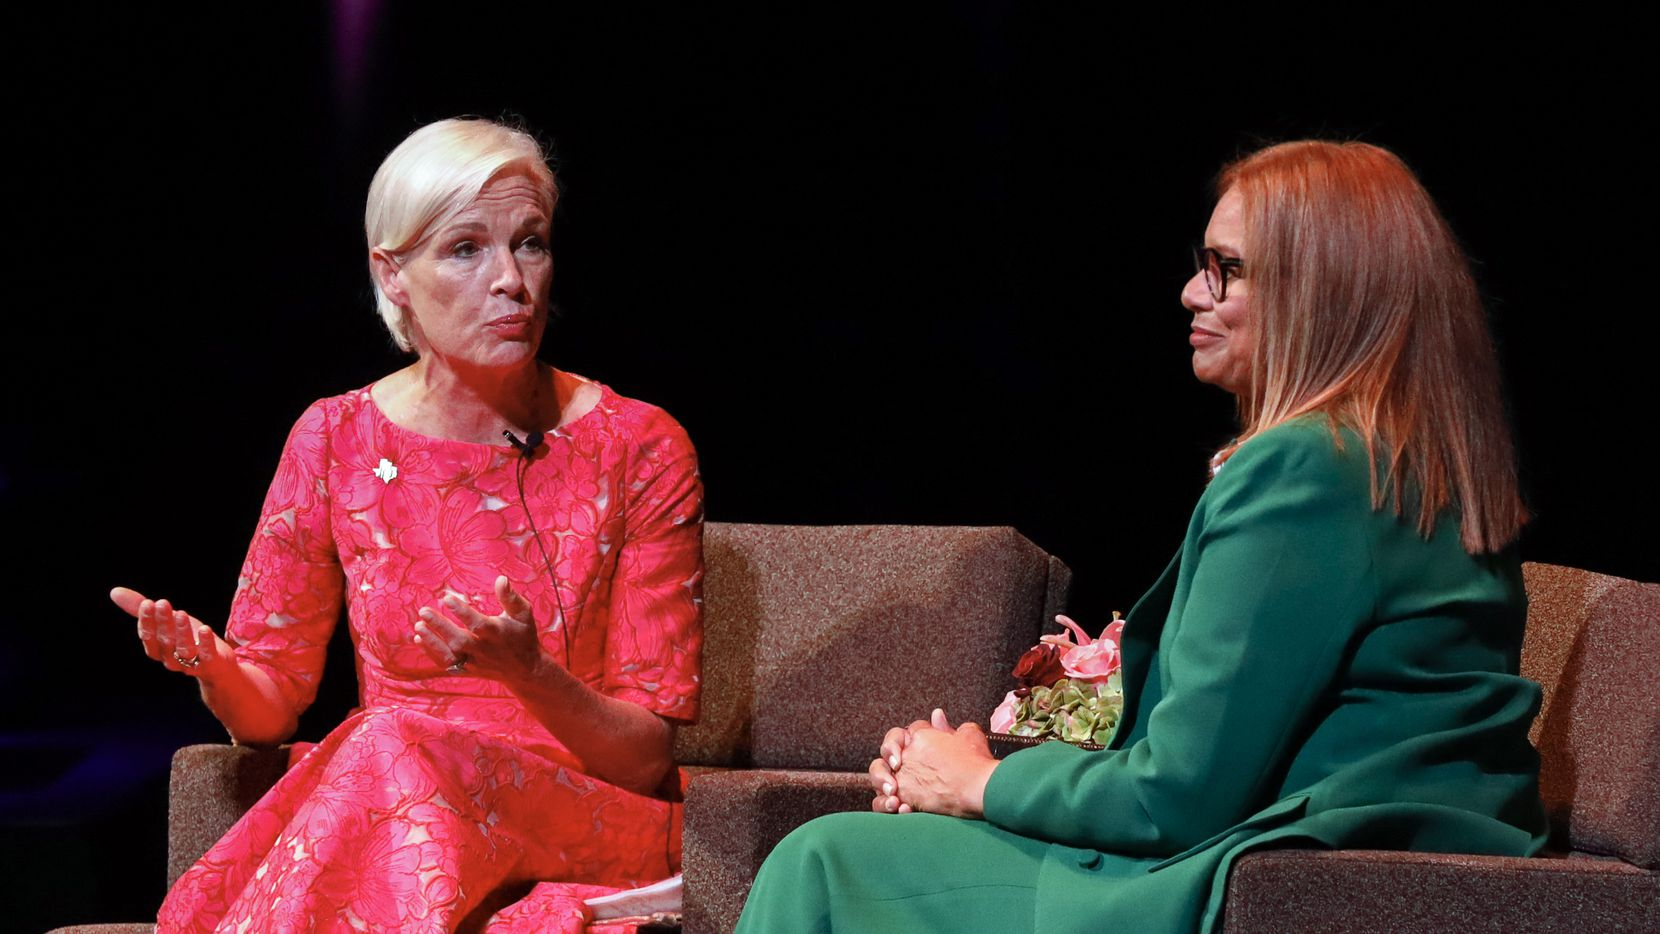 Former Planned Parenthood Federation of America president Cecile Richards speaks with Matrice Ellis-Kirk at the Planned Parenthood of Greater Texas' Dallas Awards at the AT&T Performing Arts Center on Thursday, Sept. 23, 2021, in Dallas.